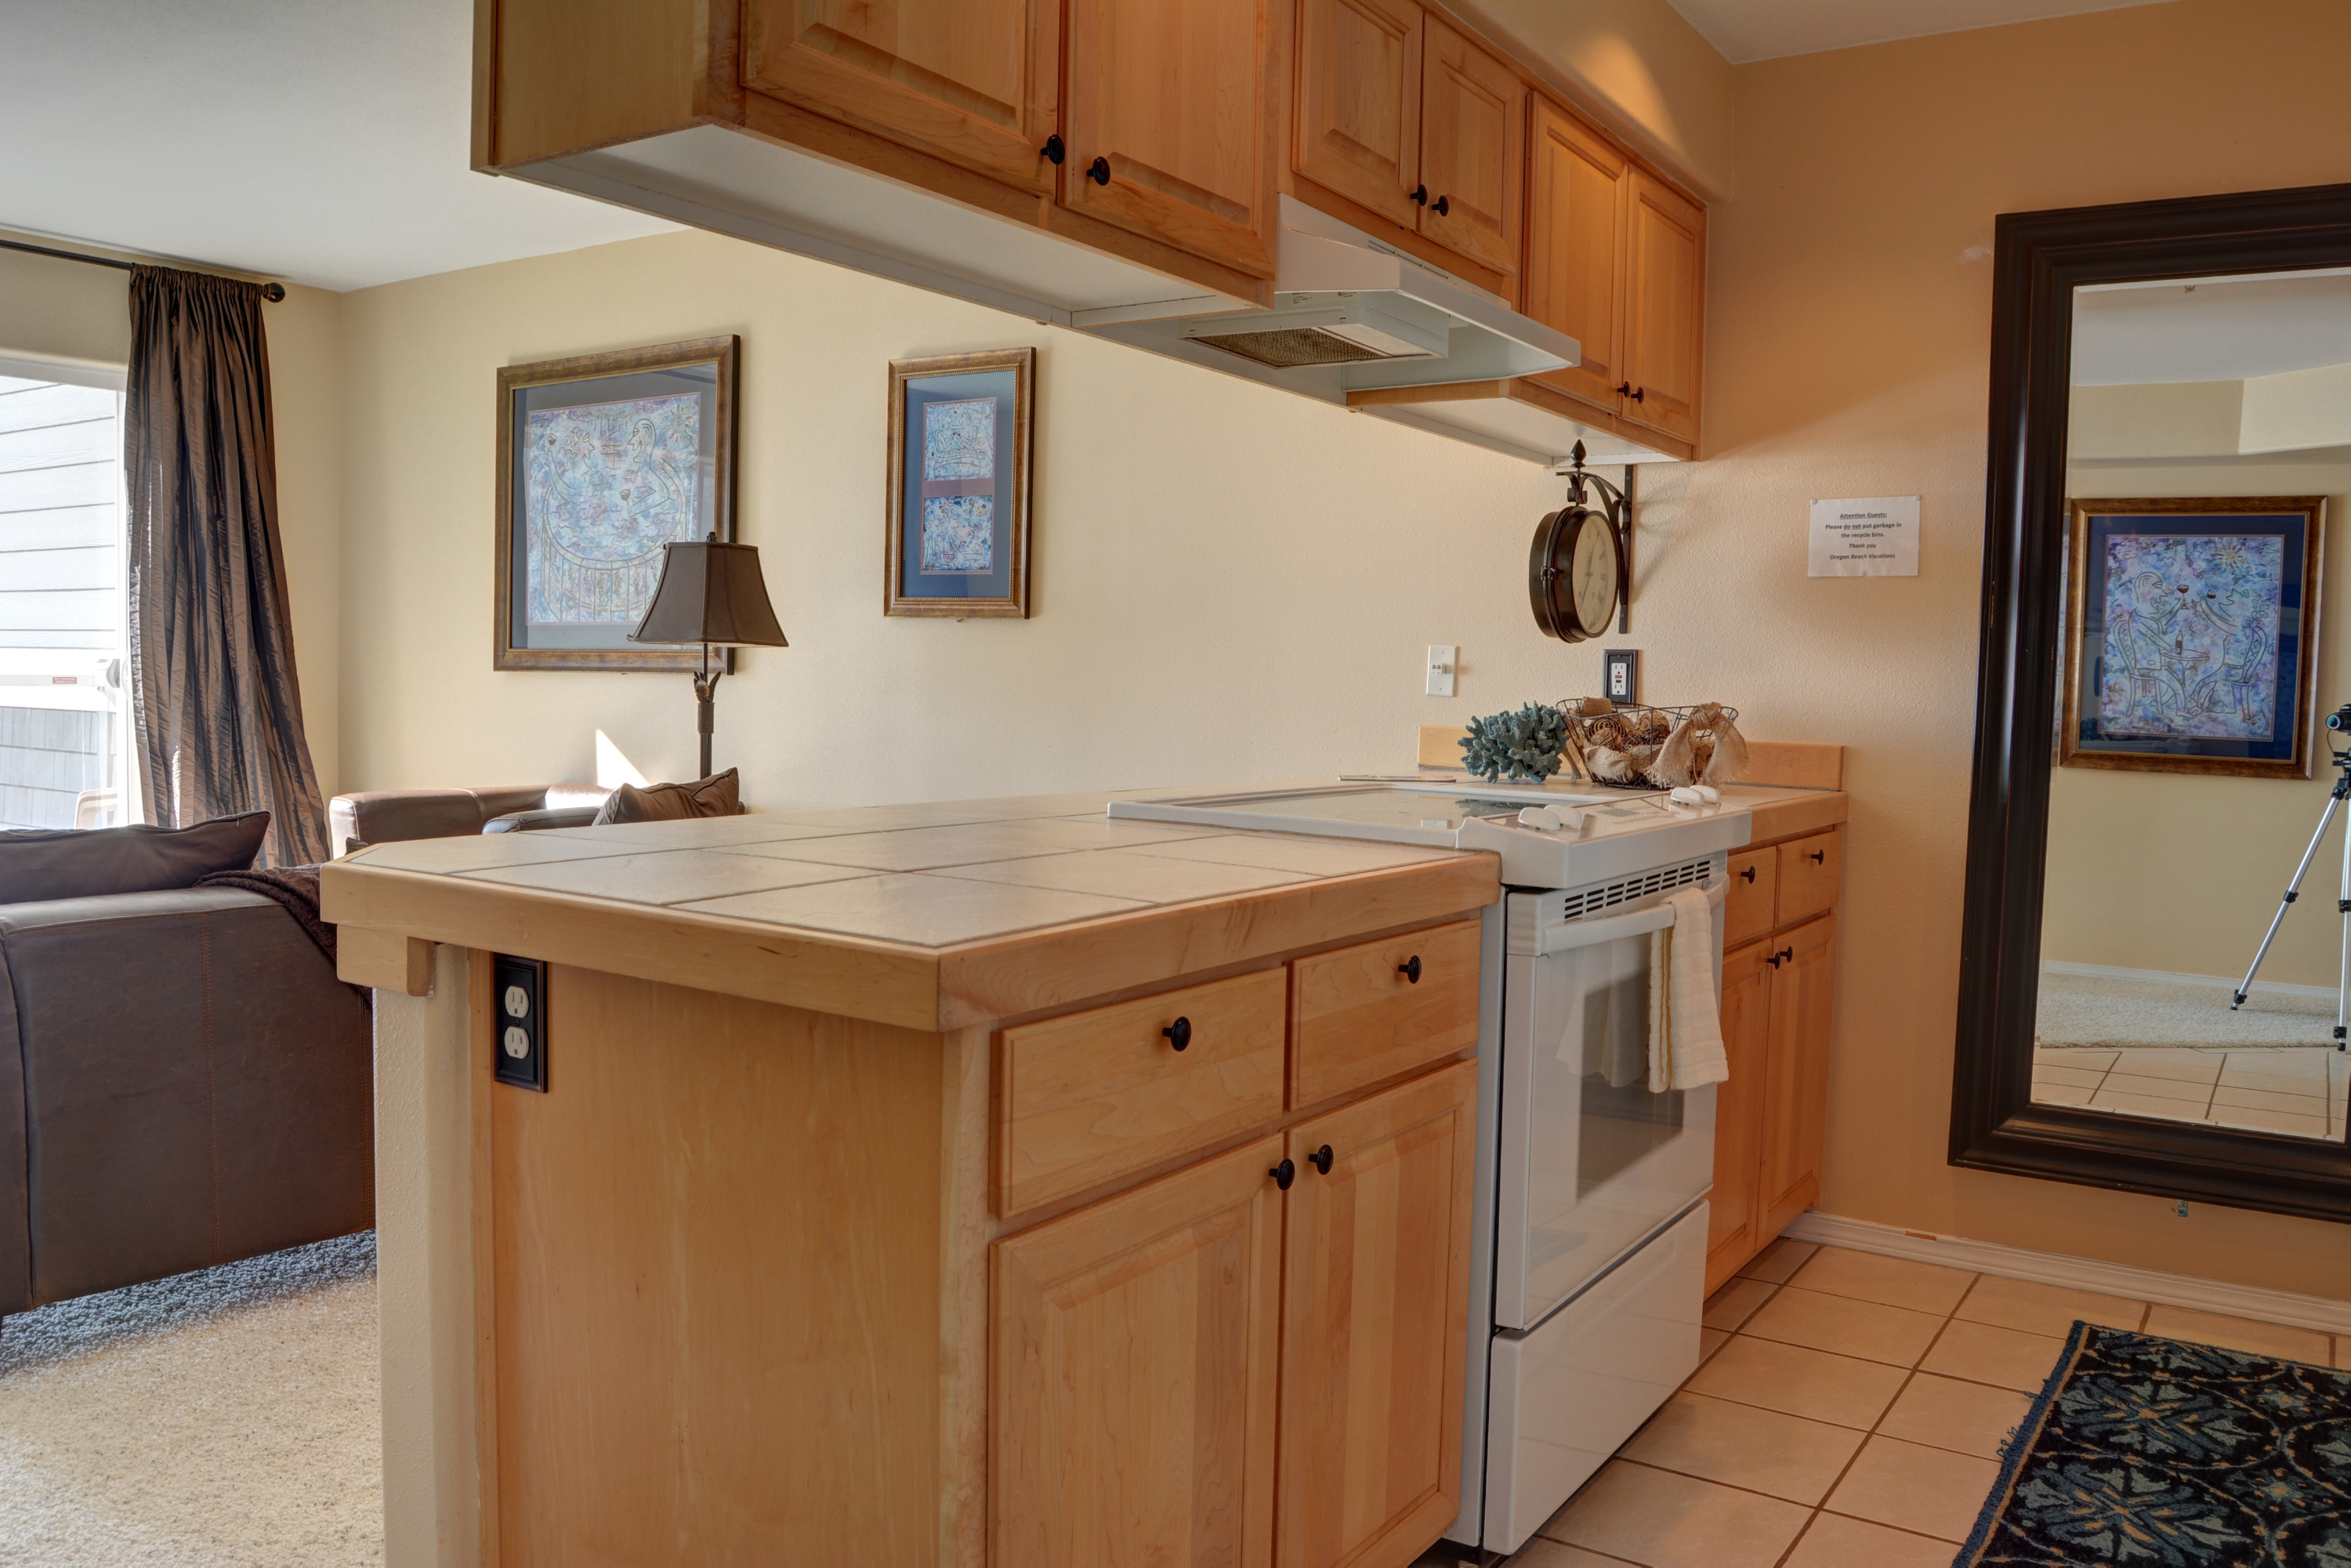 oregon overview beach lincoln edge rentals vacation booking average city waters review